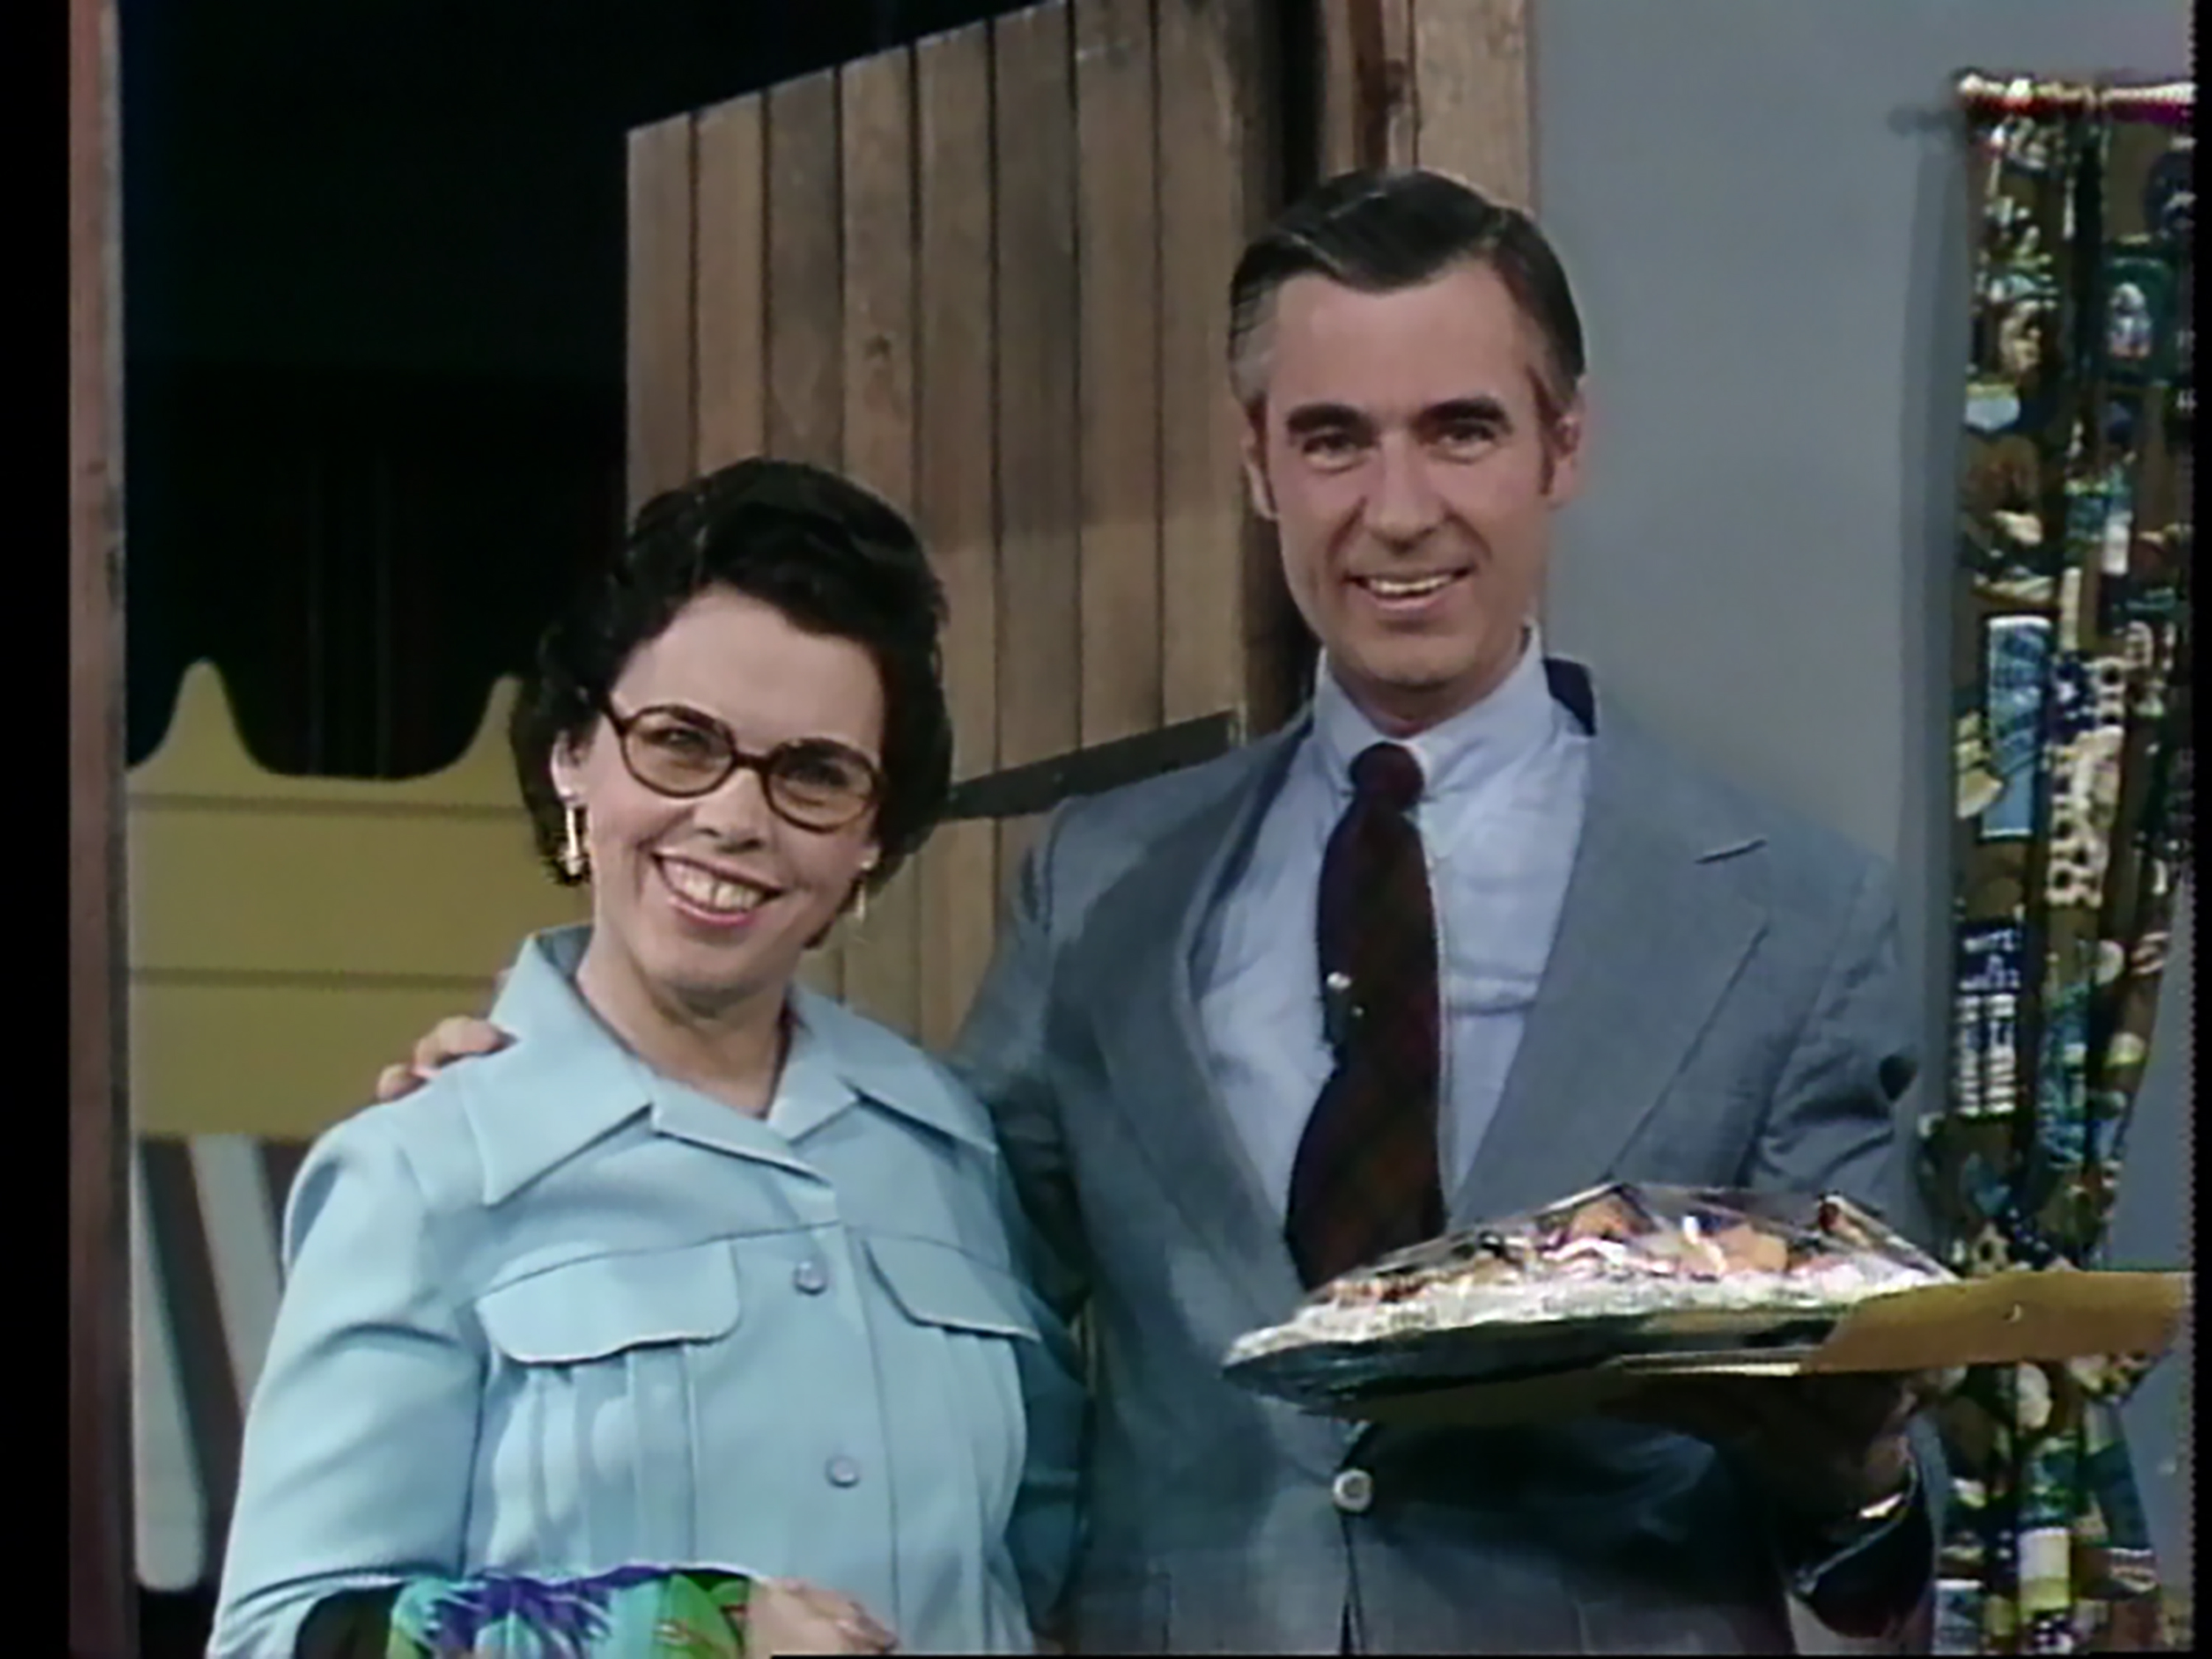 Larger photo of Joanne and Fred Rogers on the set of Mister Rogers' Neighborhood.